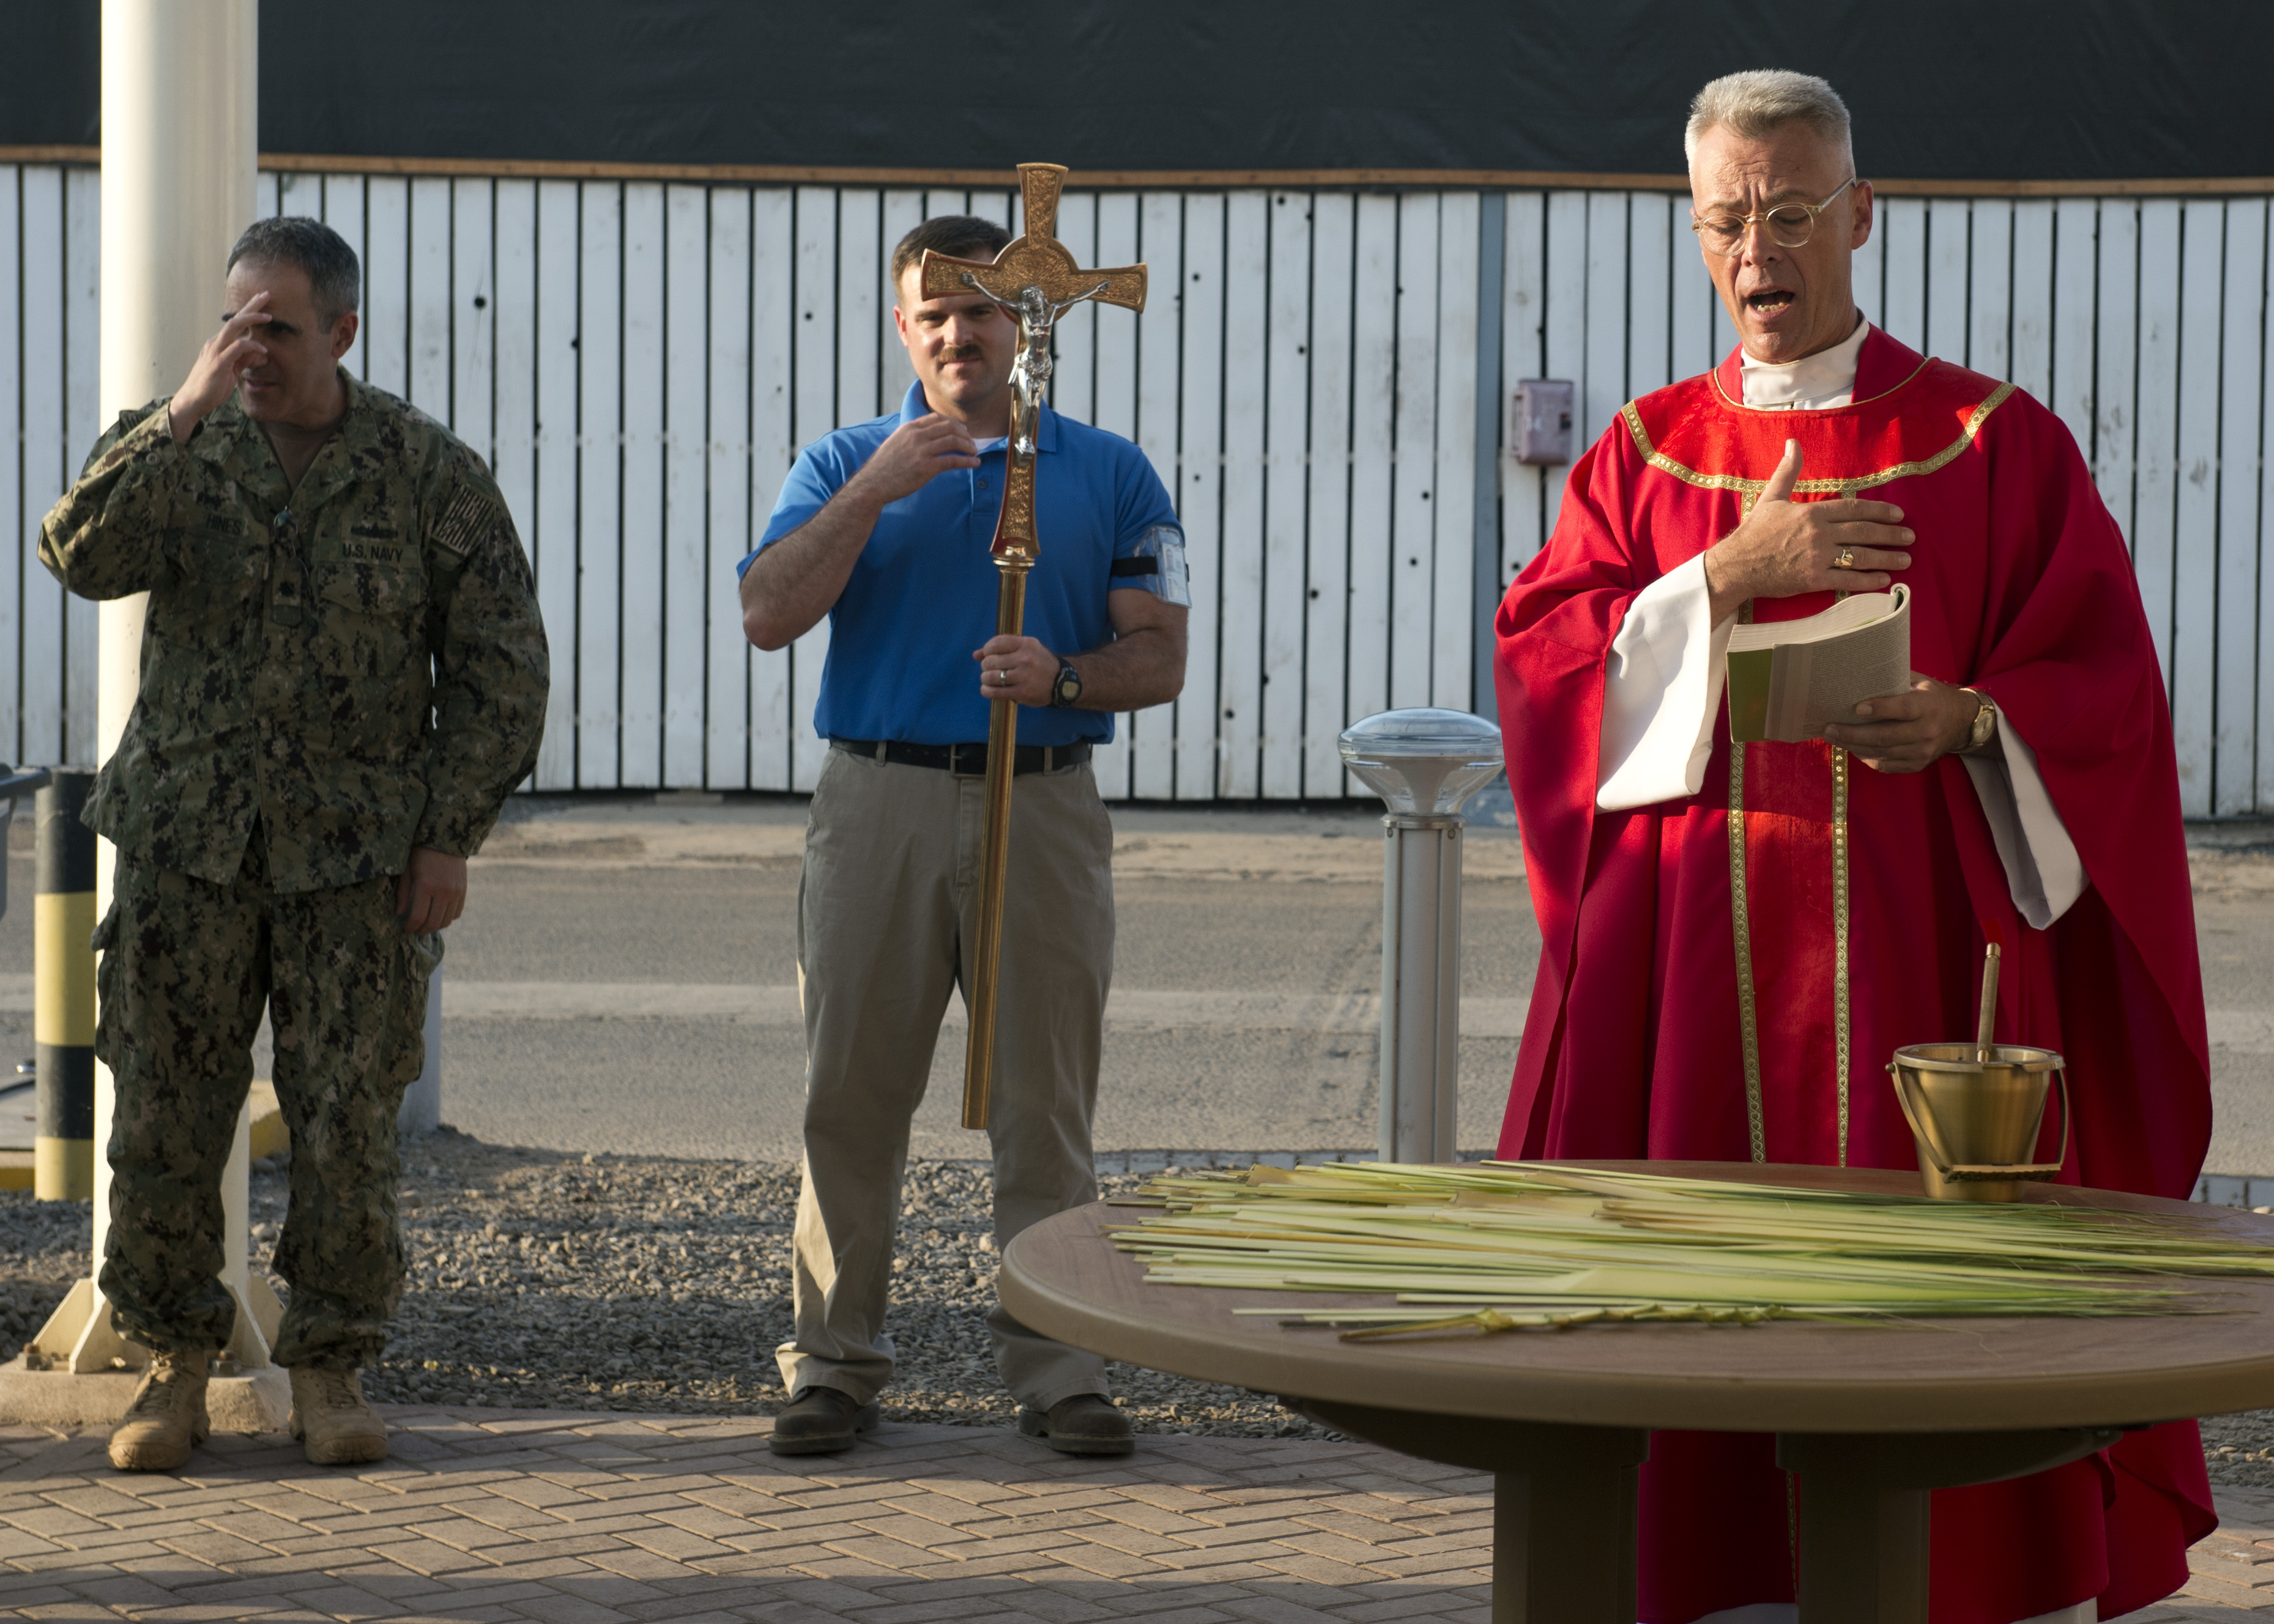 U.S. Navy Chaplain Capt. Sean O'Brien leads Catholic mass at Camp Lemonnier, Djibouti, Mar. 28, 2015. The Chaplain's priorities are to enhance Airmen's readiness by preparing them with spiritual resiliency, engaging them through ministry of presence and spiritual care and ensuring worship and religious education opportunities are available to all. (U.S. Air Force photo by Staff Sgt. Kevin Iinuma)